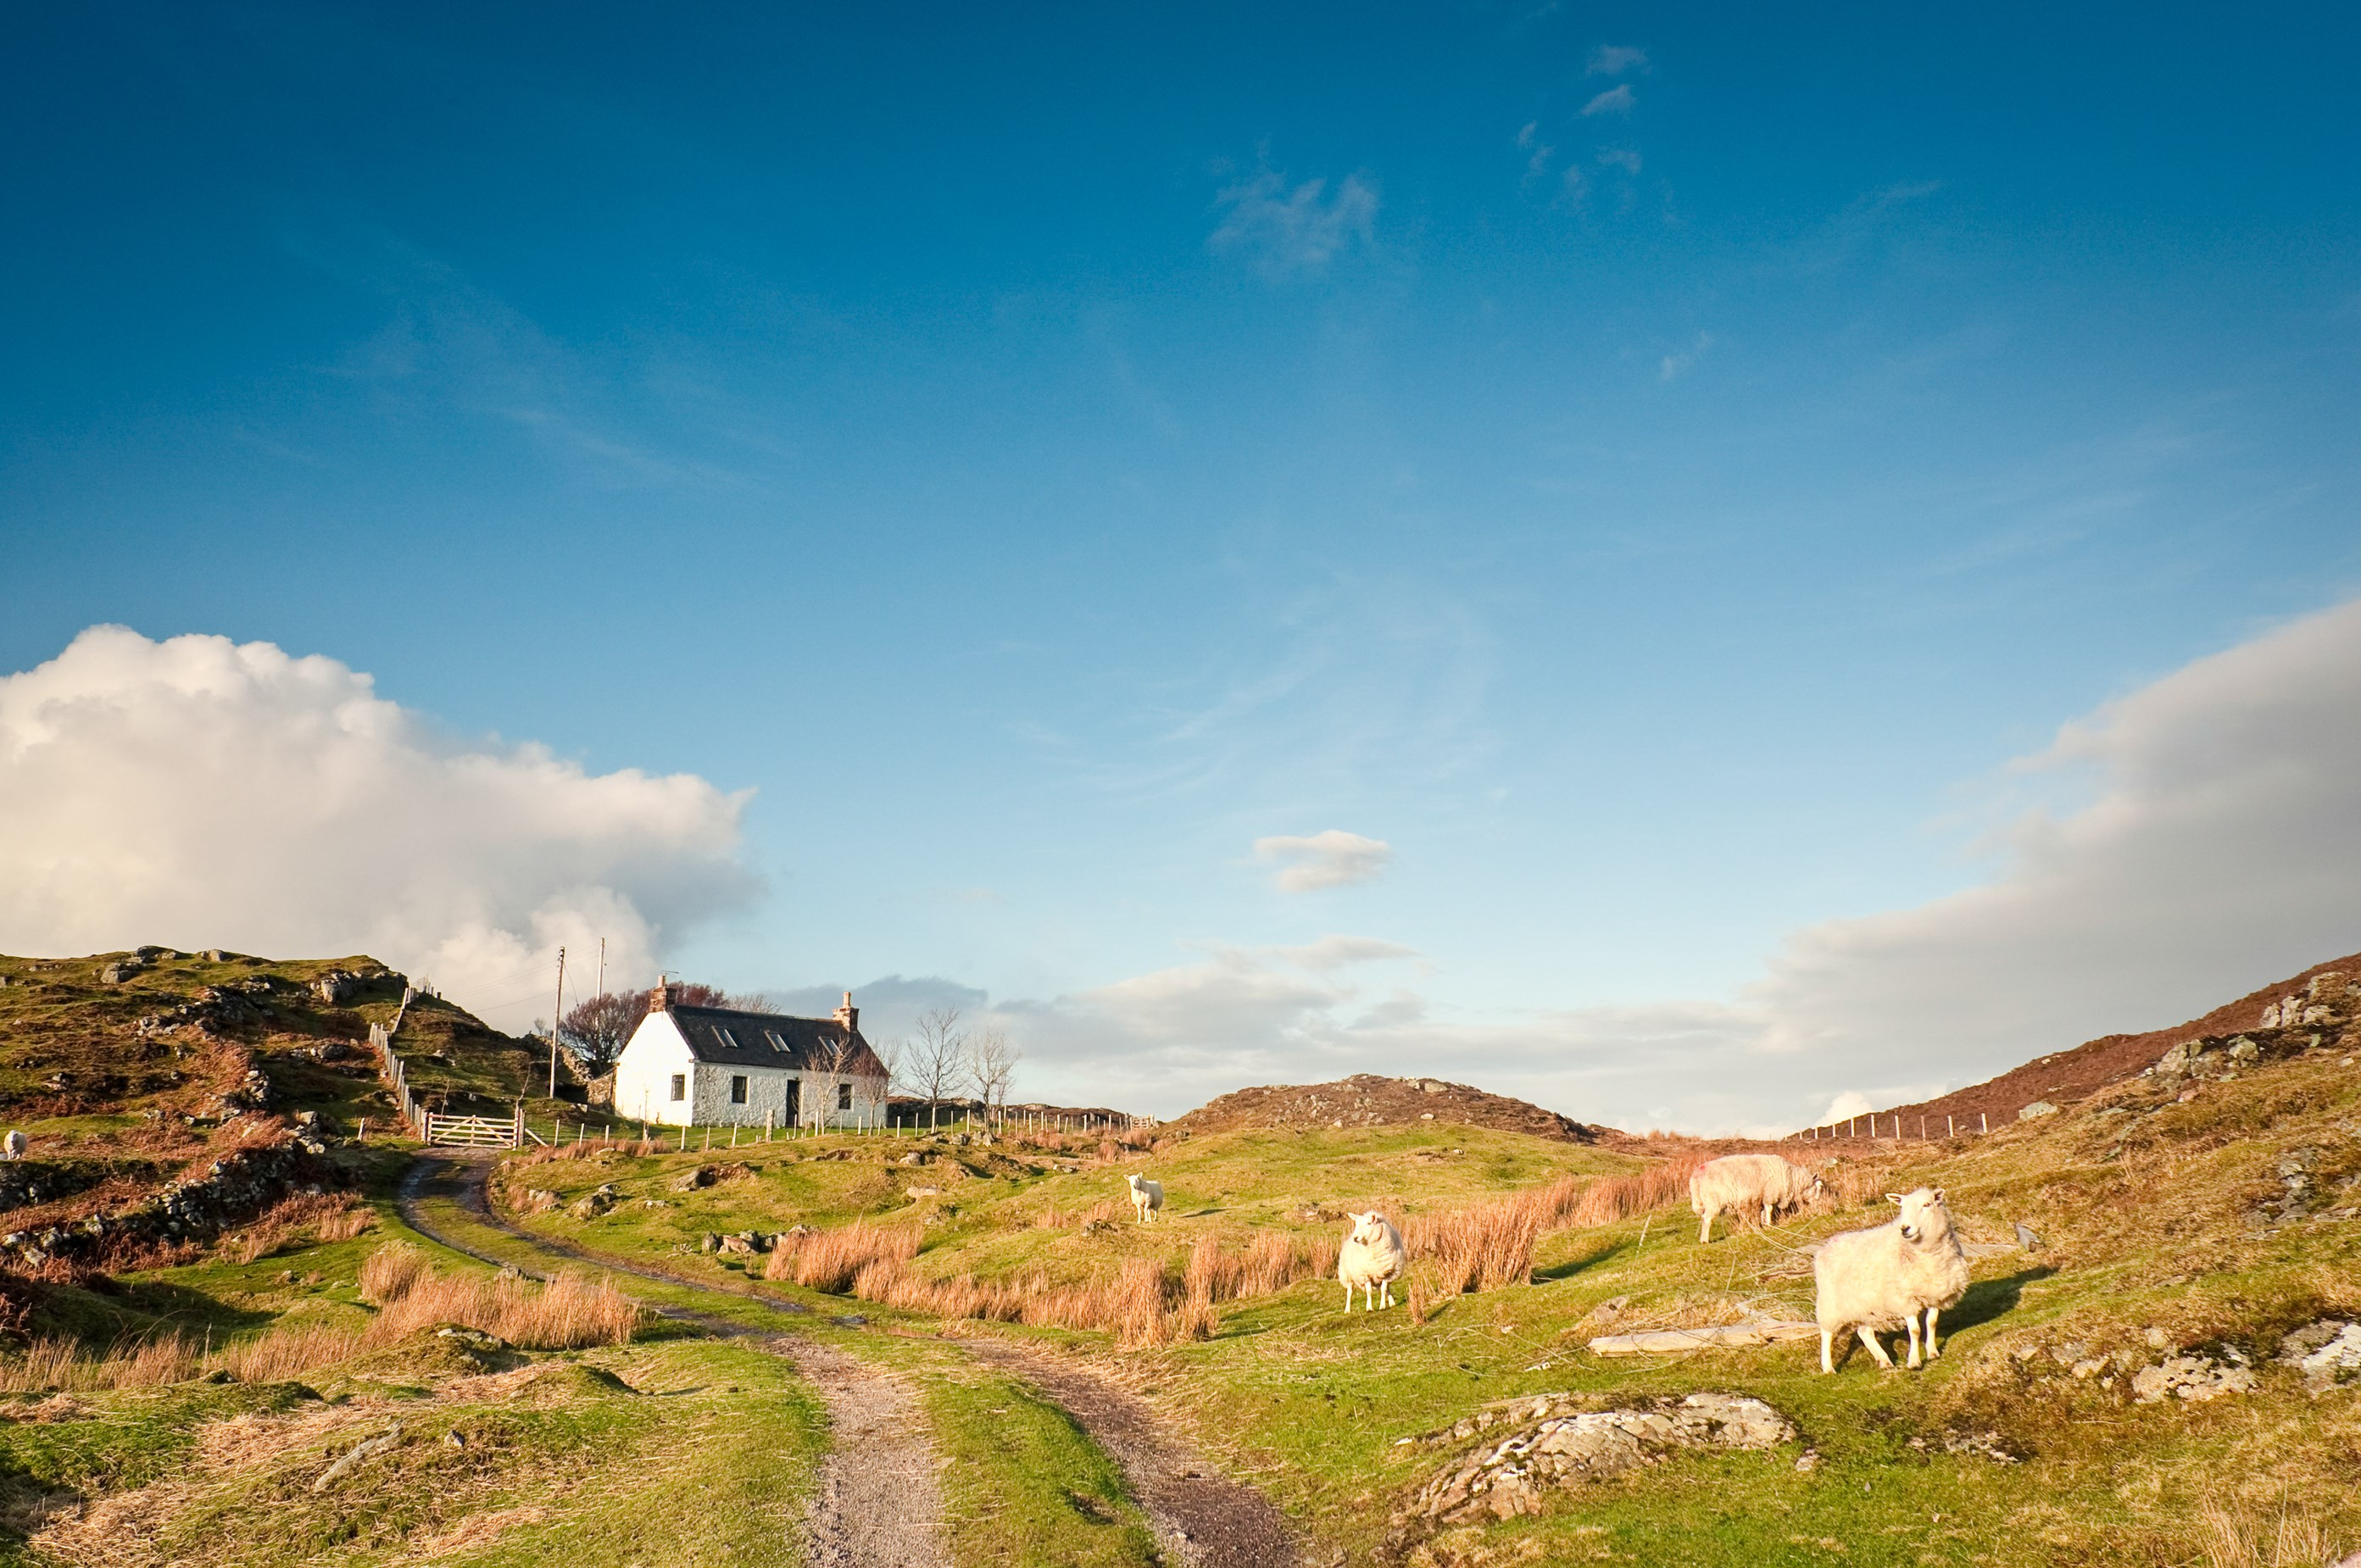 Farmhouse and sheep in Assynt - Shutterstock.jpg